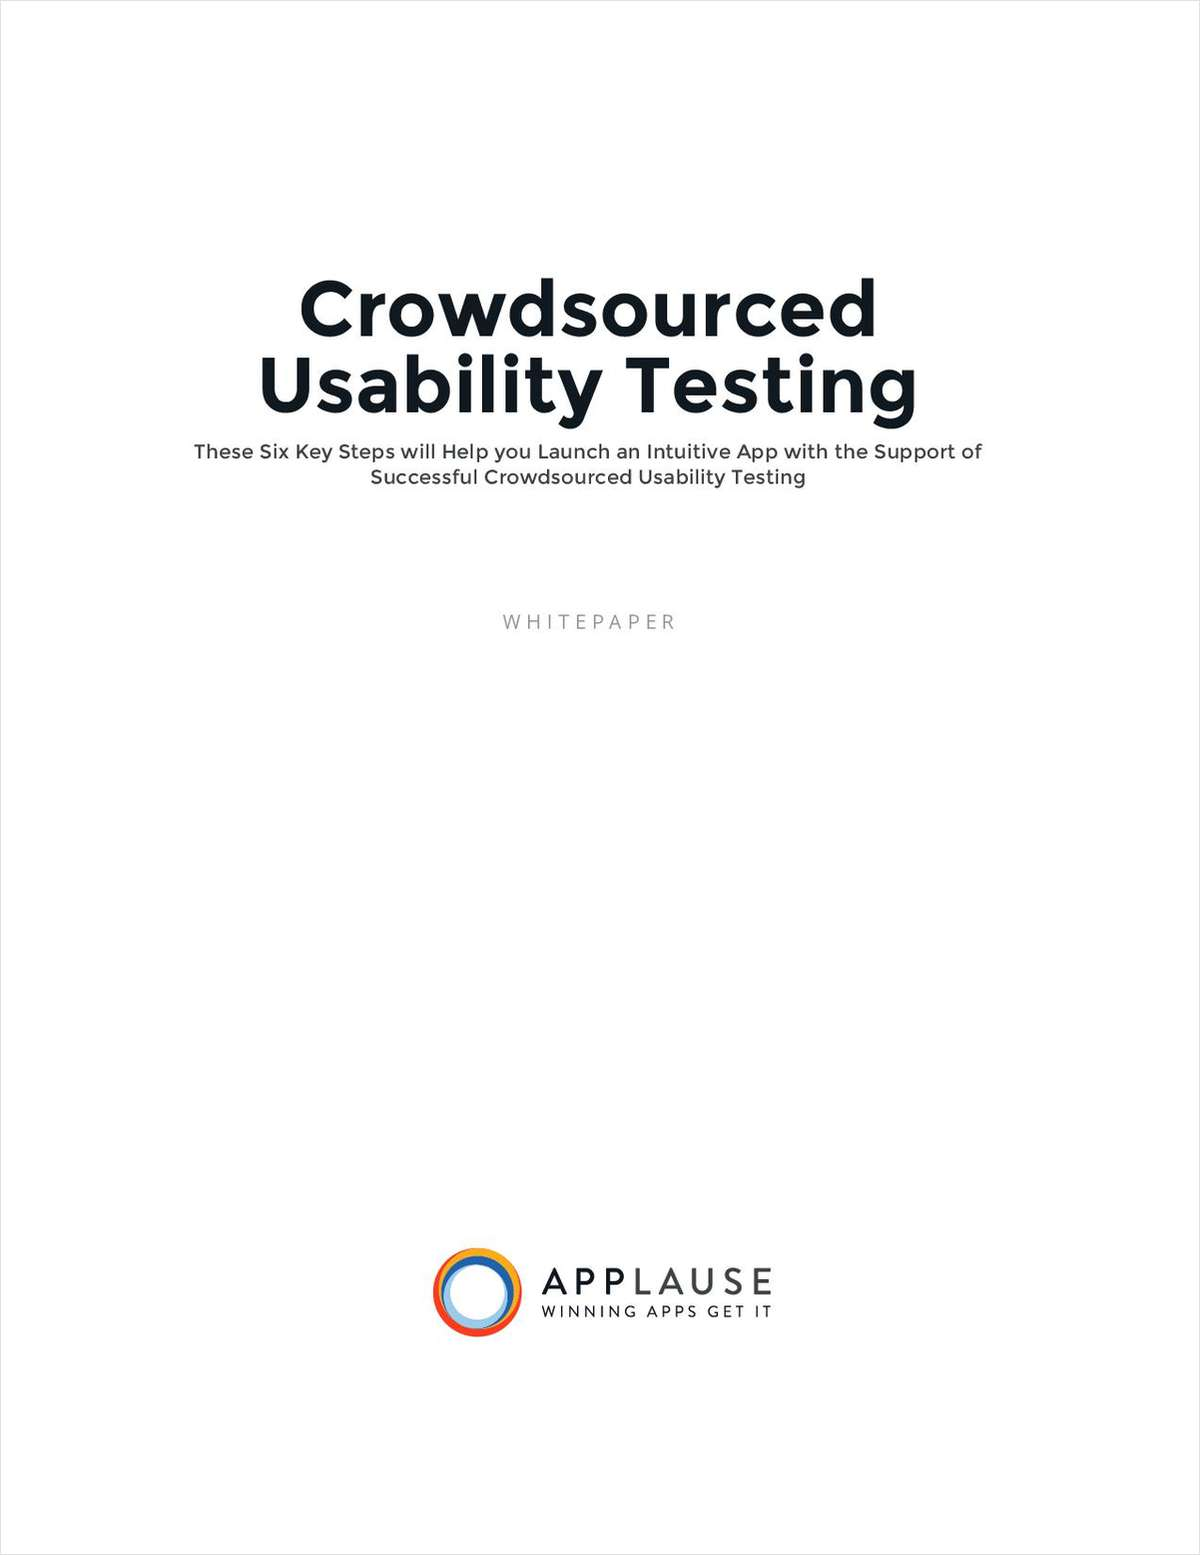 6 Steps to an Intuitive App with Crowdsourced Usability Testing